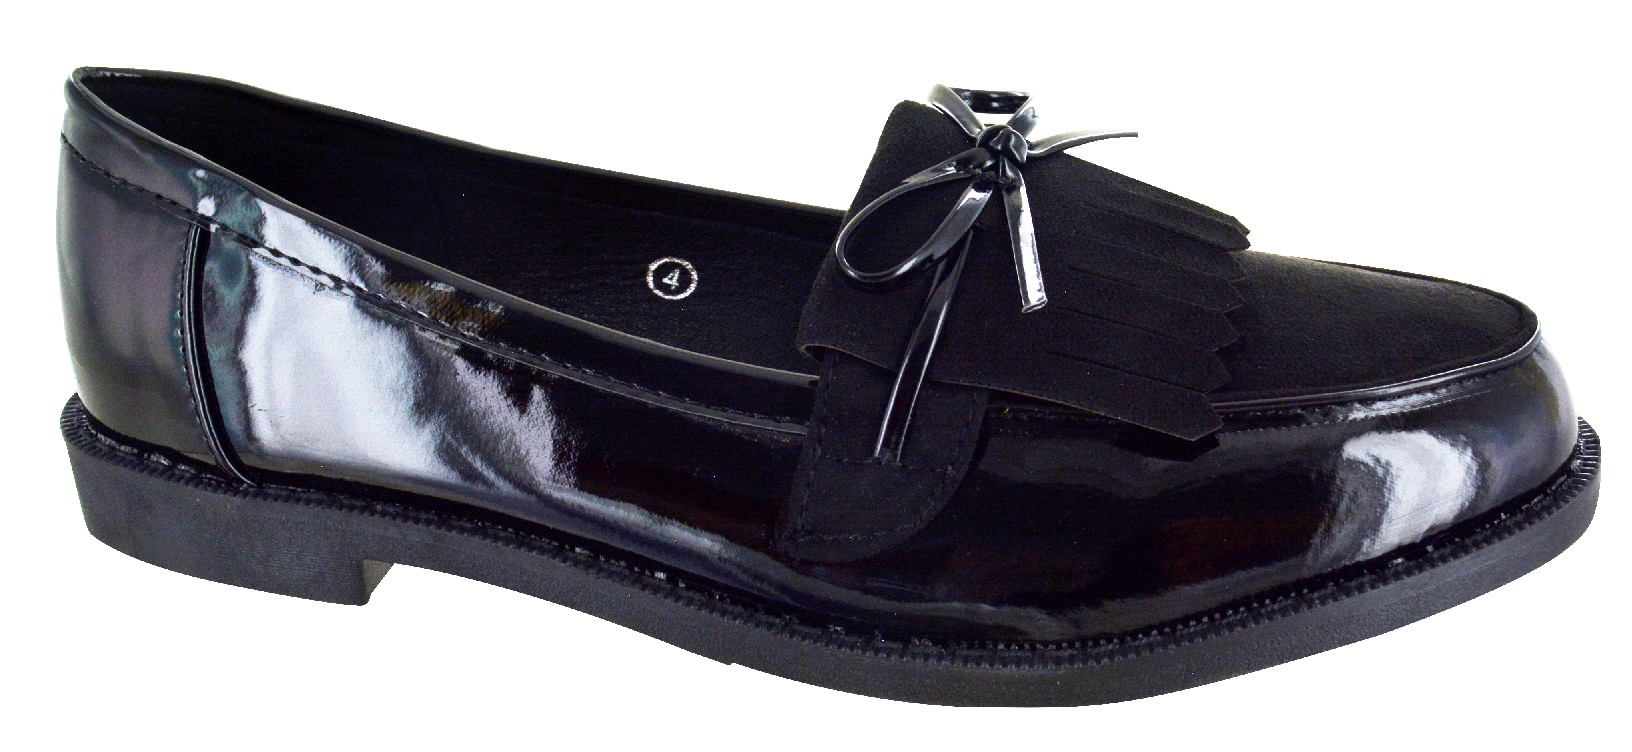 WOMENS-LADIES-FLAT-CREEPER-CHUNKY-SOLE-SCHOOL-WORK-DOLLY-LOAFERS-BOW-SHOES-SIZE thumbnail 12